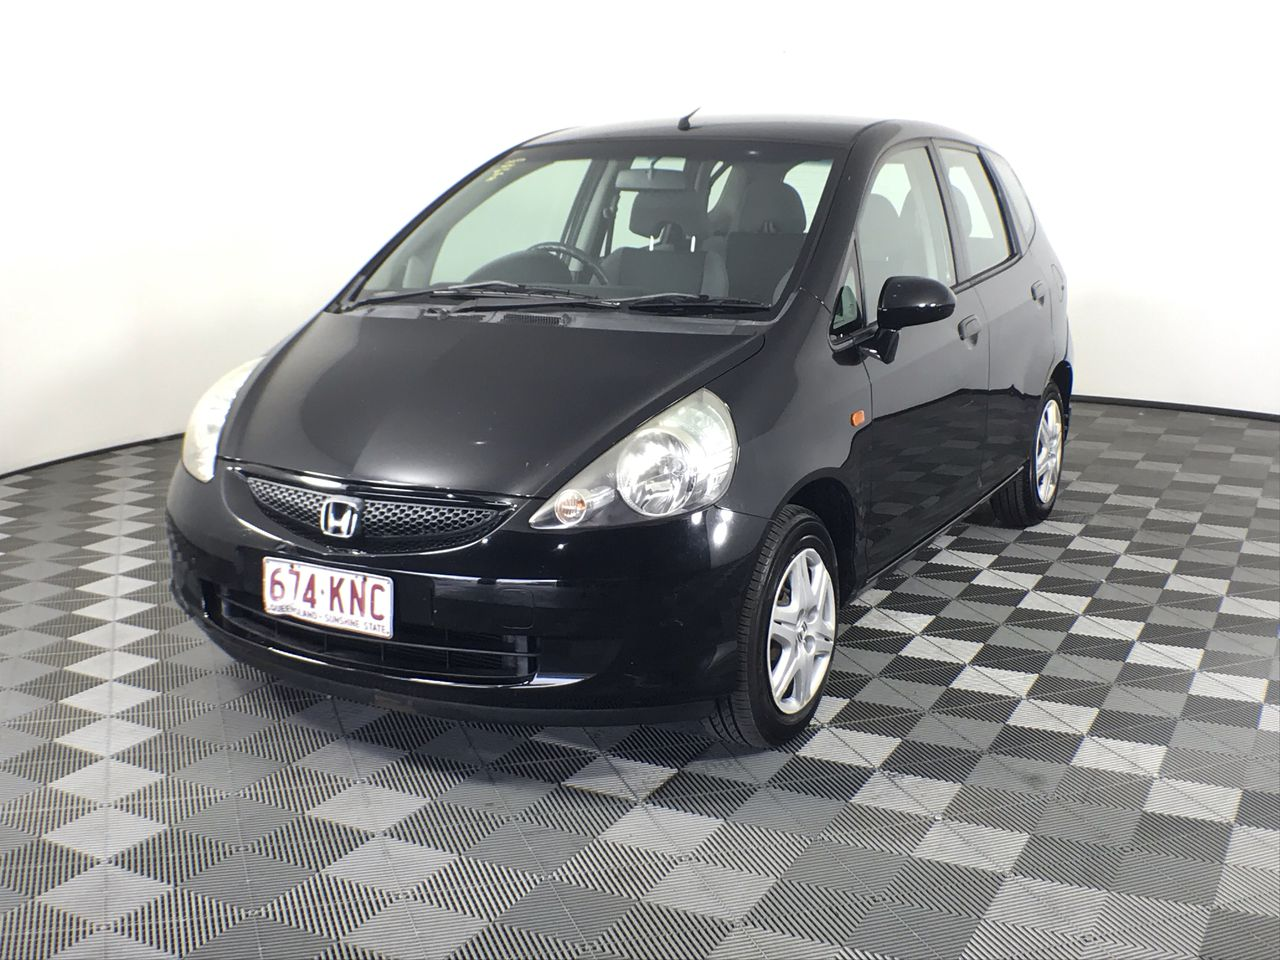 2007 Honda Jazz GLi GD Manual Hatchback